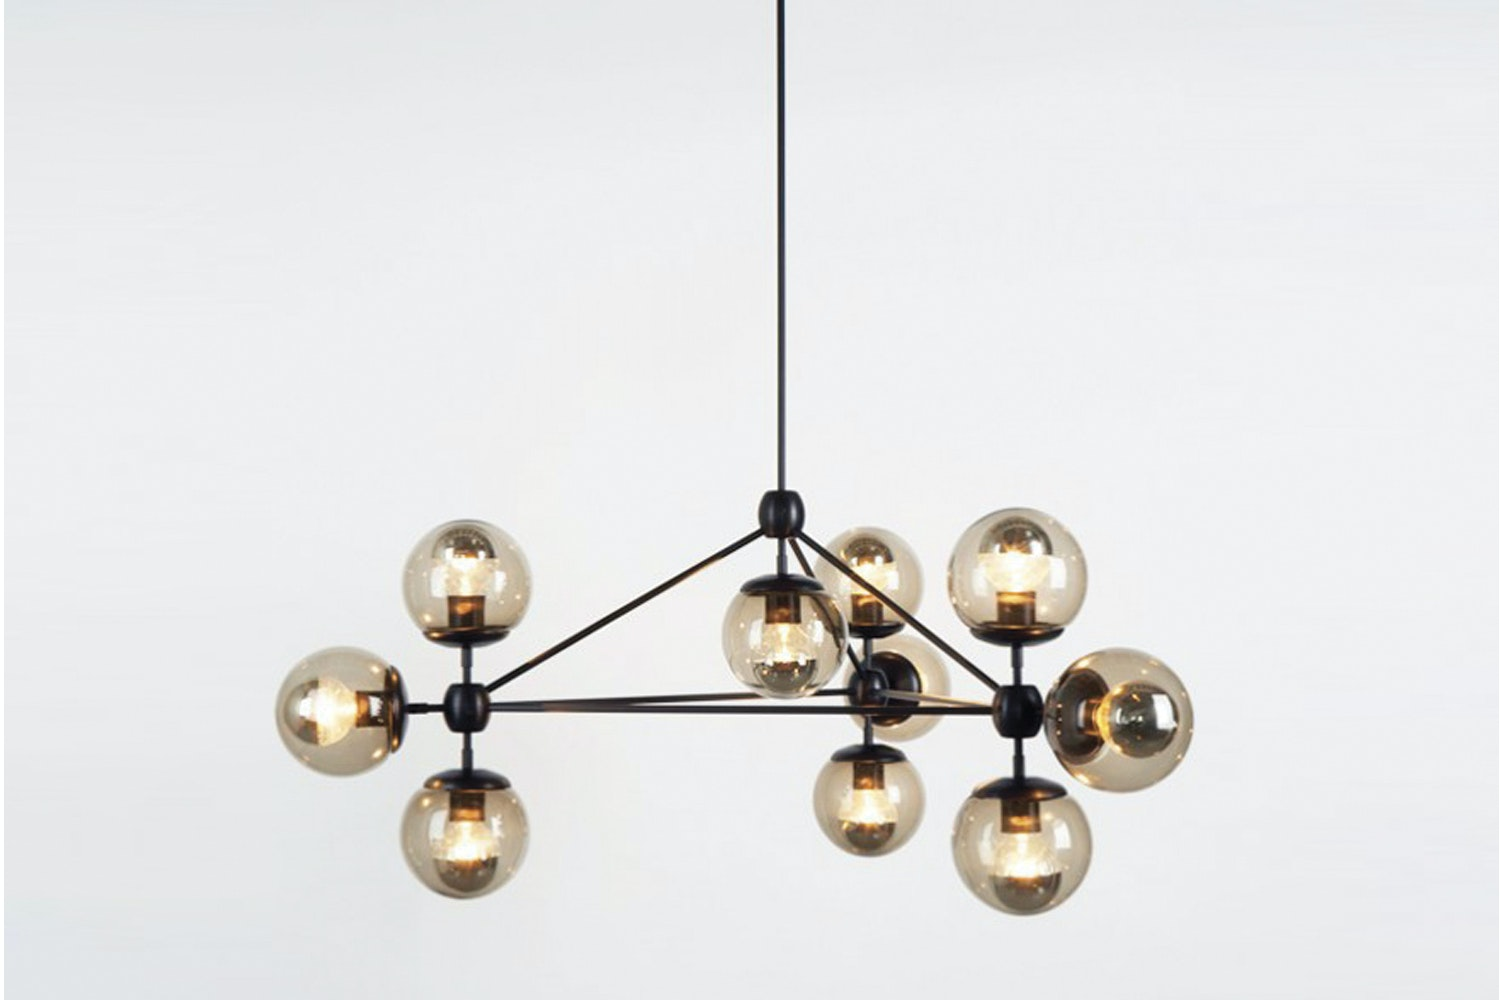 Modo Chandelier - 3 Sided 10 Globes Bronze, Smoked by Jason Miller for Roll & Hill